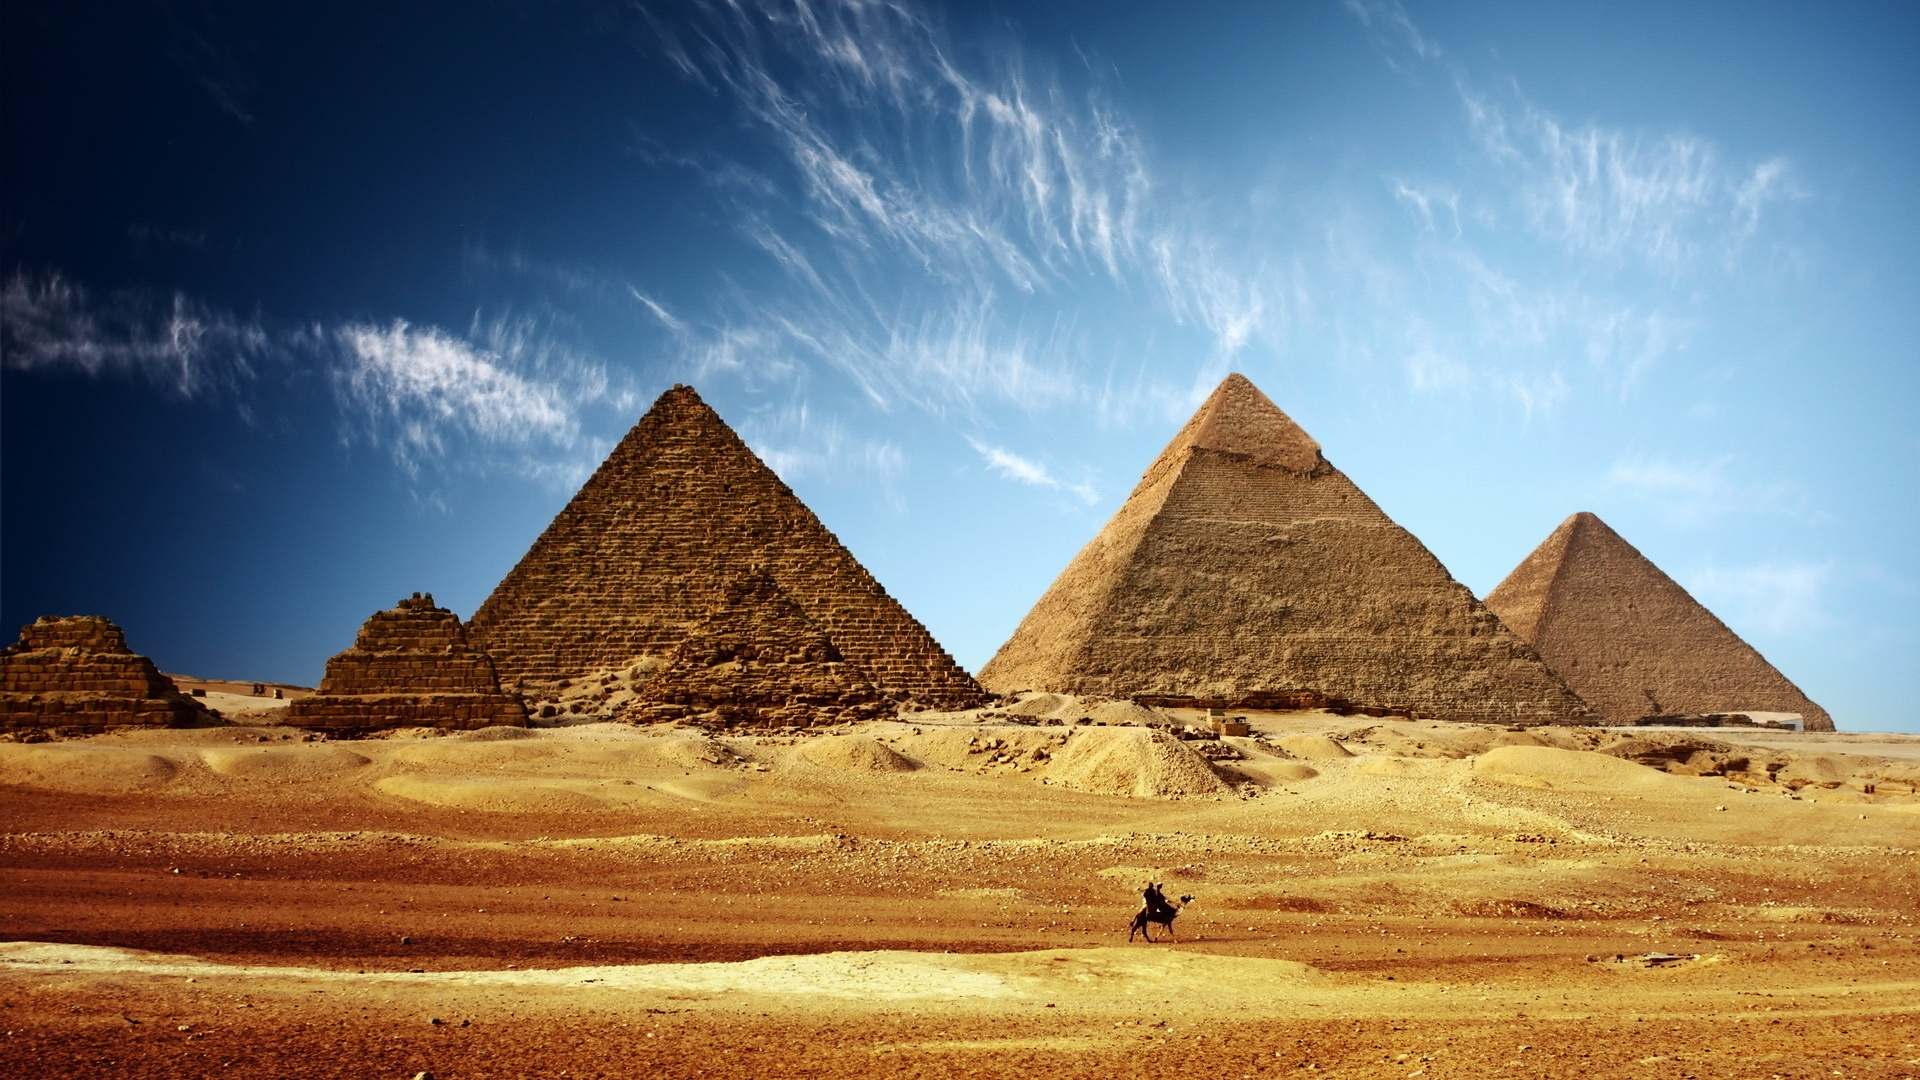 The Great Pyramids of Giza | Monuments Around the World